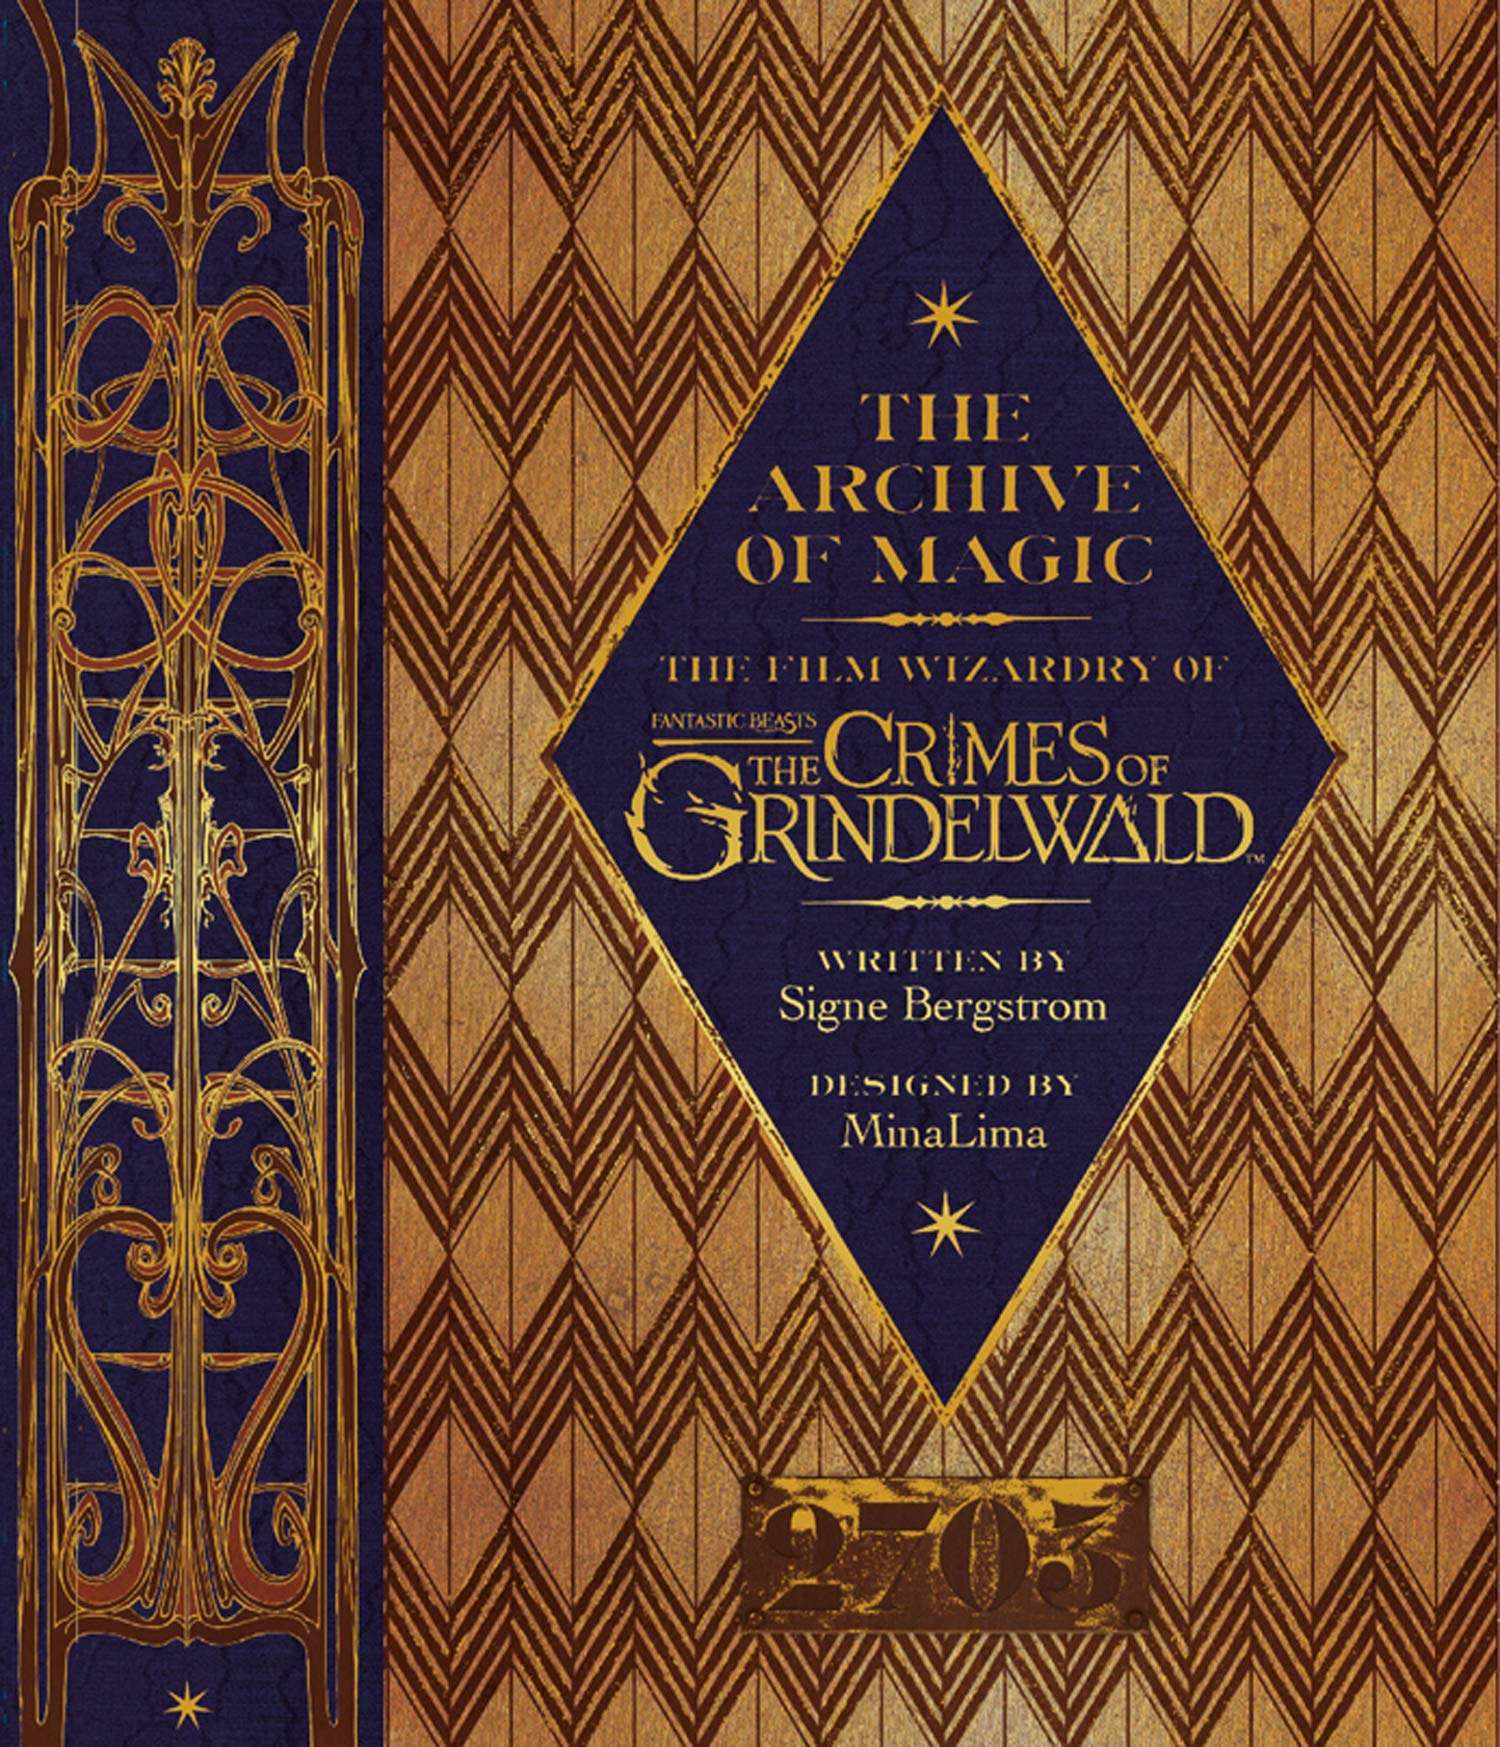 Image for The Archive of Magic: the Film Wizardry of Fantastic Beasts: The Crimes of Grindelwald: Explore the Film Wizardy of Fantastic Beasts (Fantastic Beasts/Grindelwald)